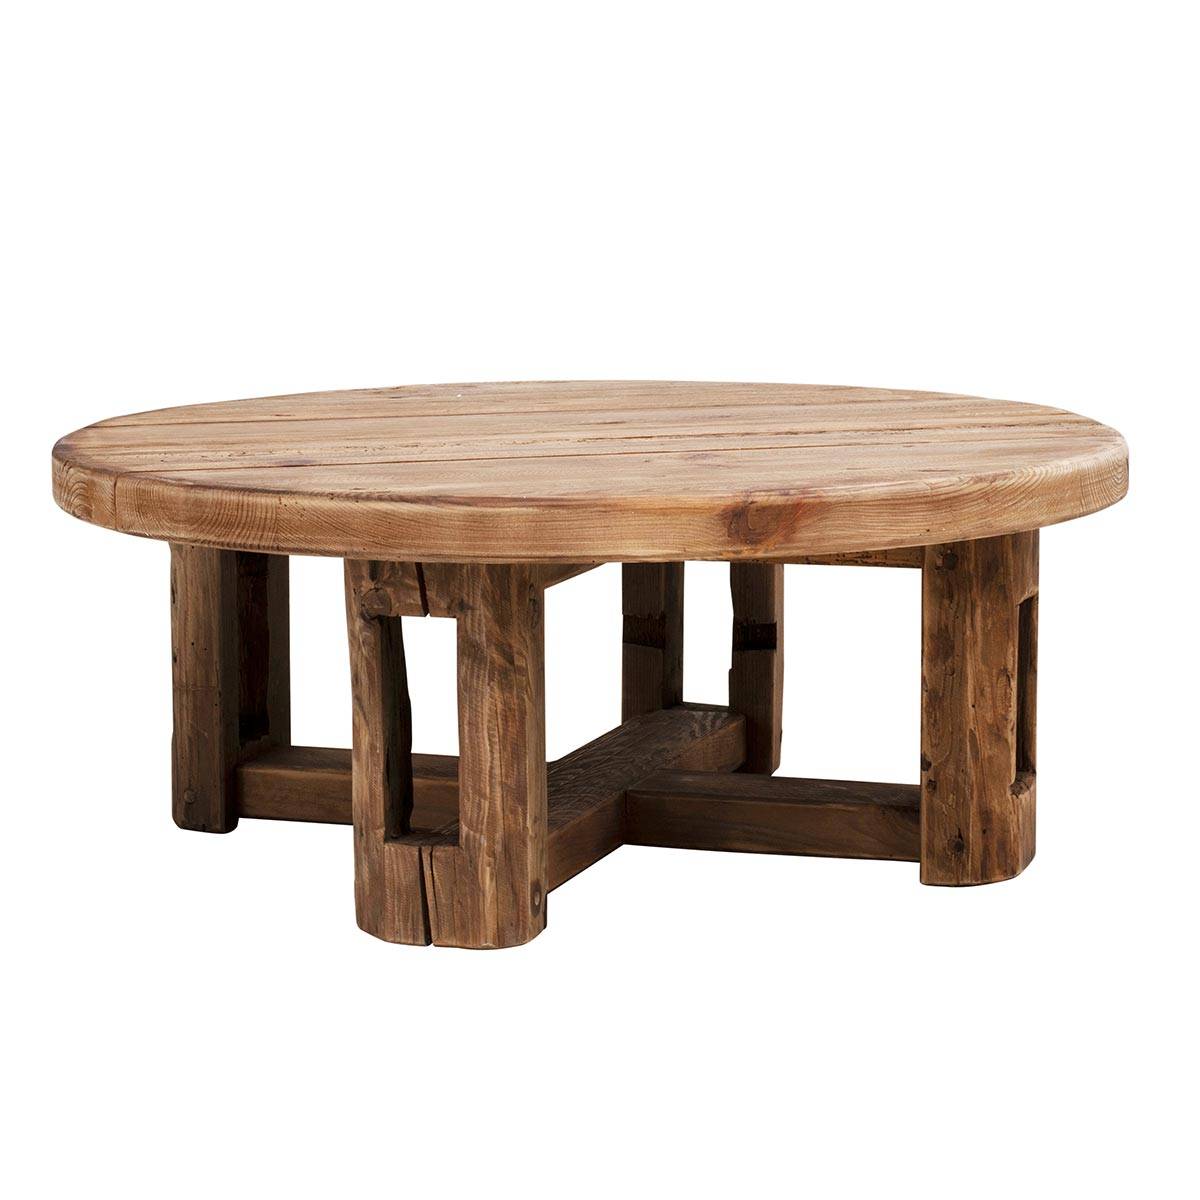 SOUTHPORT COFFEE TABLE in reclaimed pine